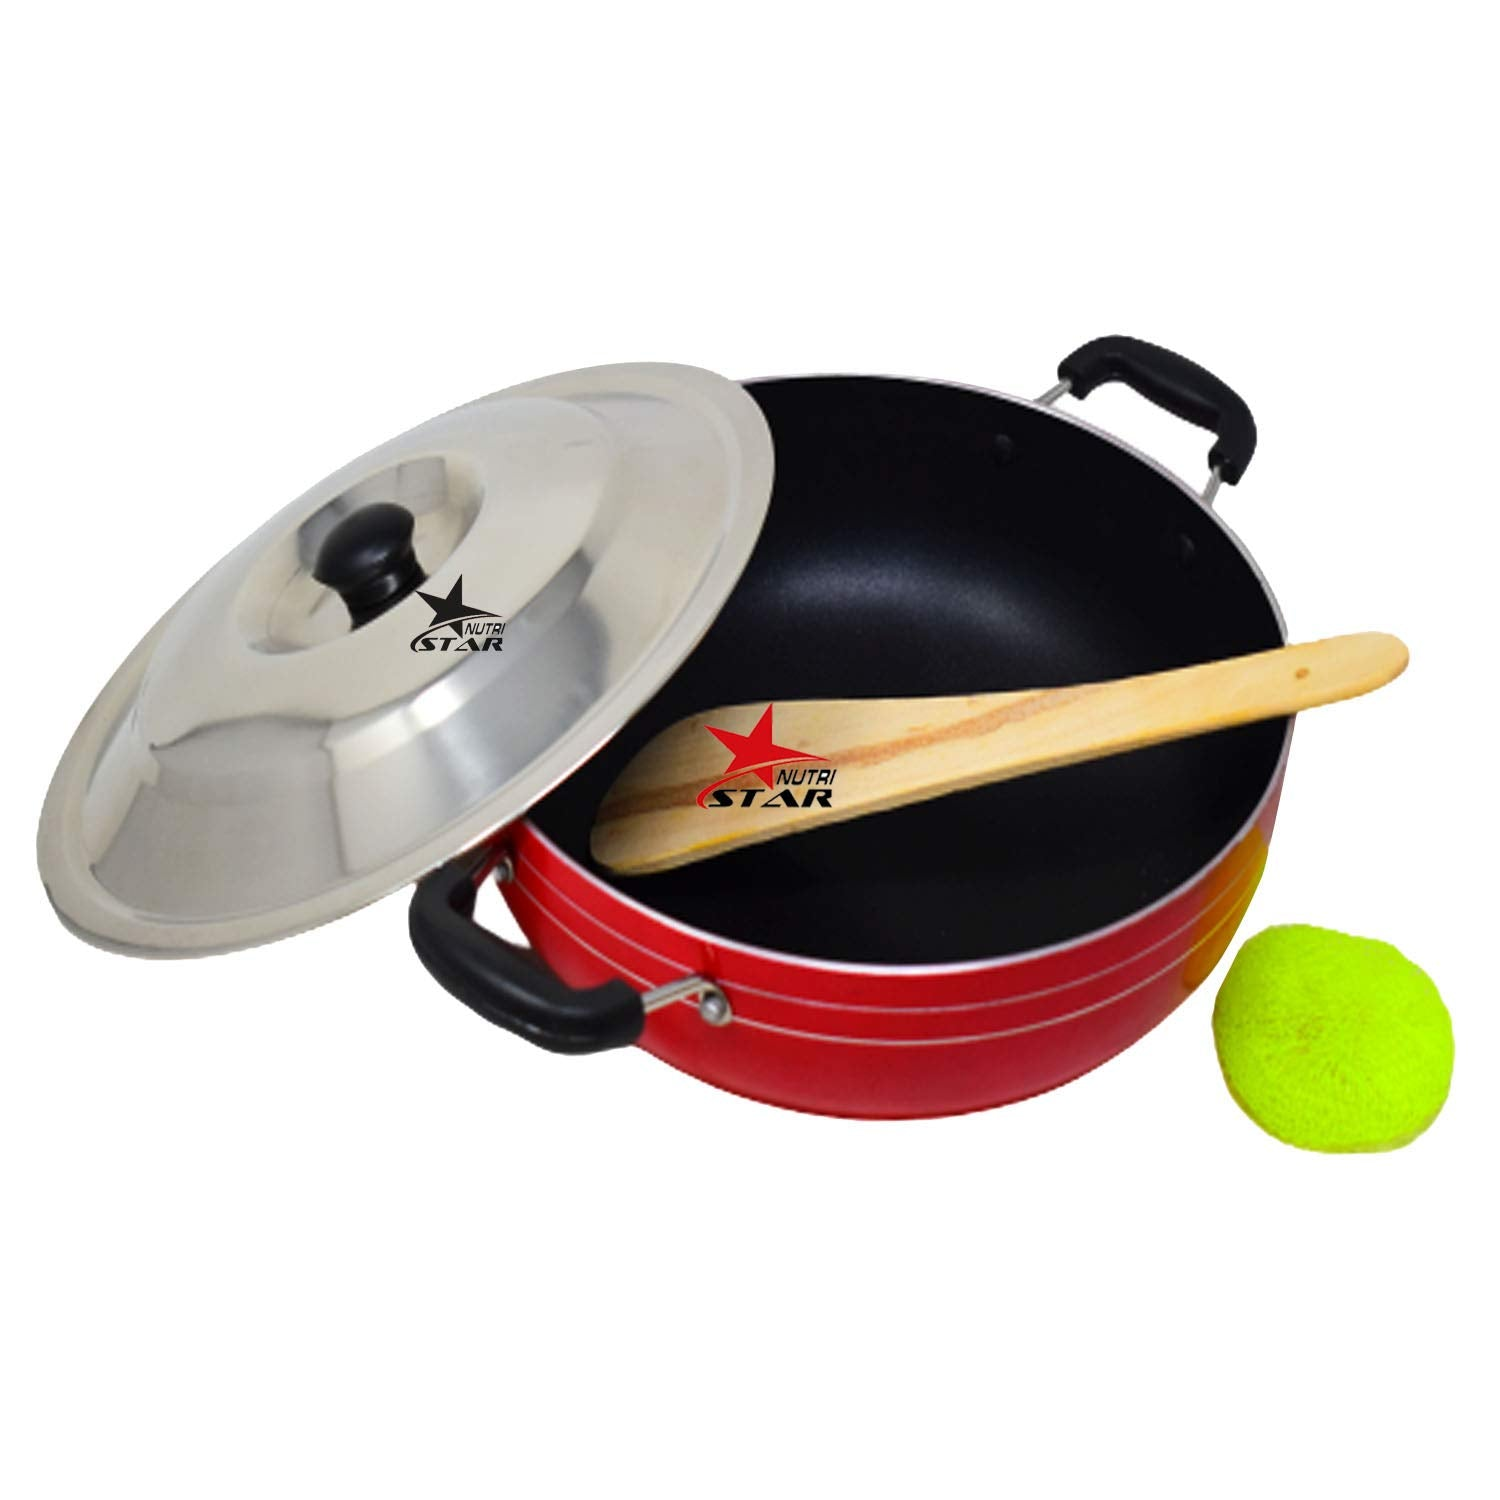 Non-Stick Kadhai Deep-Fry Pan Pan 2500ML (3MM Thickness)| Non Stick Kadai Cooking Utensil